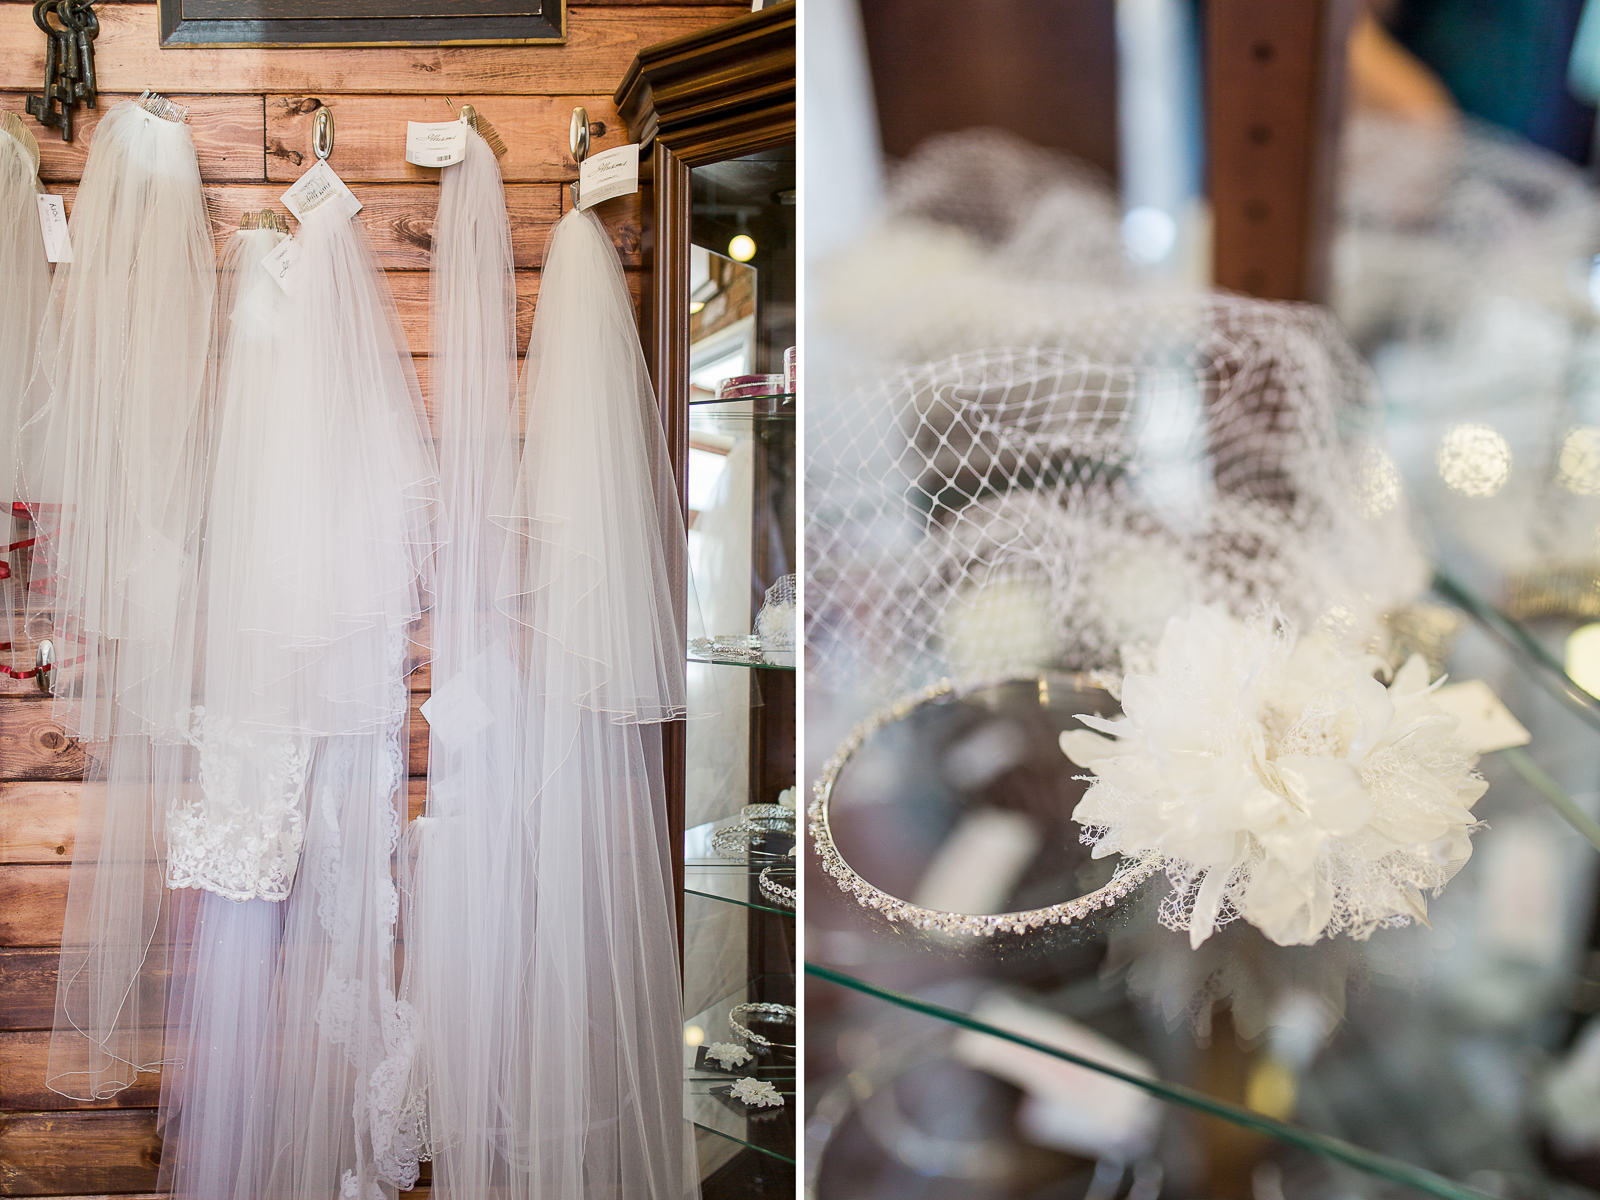 and they also carry a veil and hair accessory selection to help any bride finish her look.